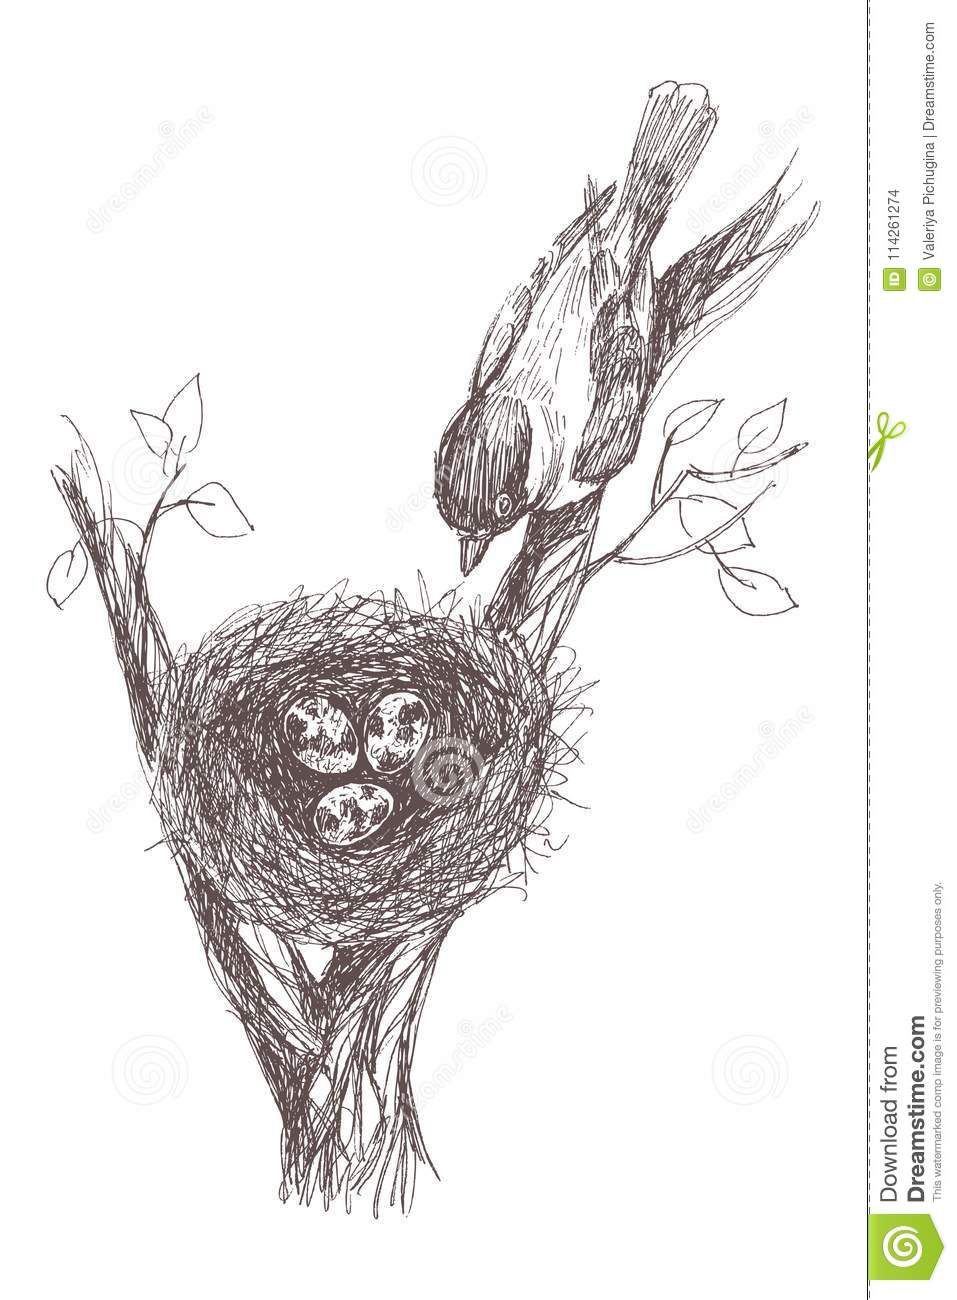 Robin nest eggs and feathers hand drawn in illustrator with charcoal brushes to create an effect of pencil drawing